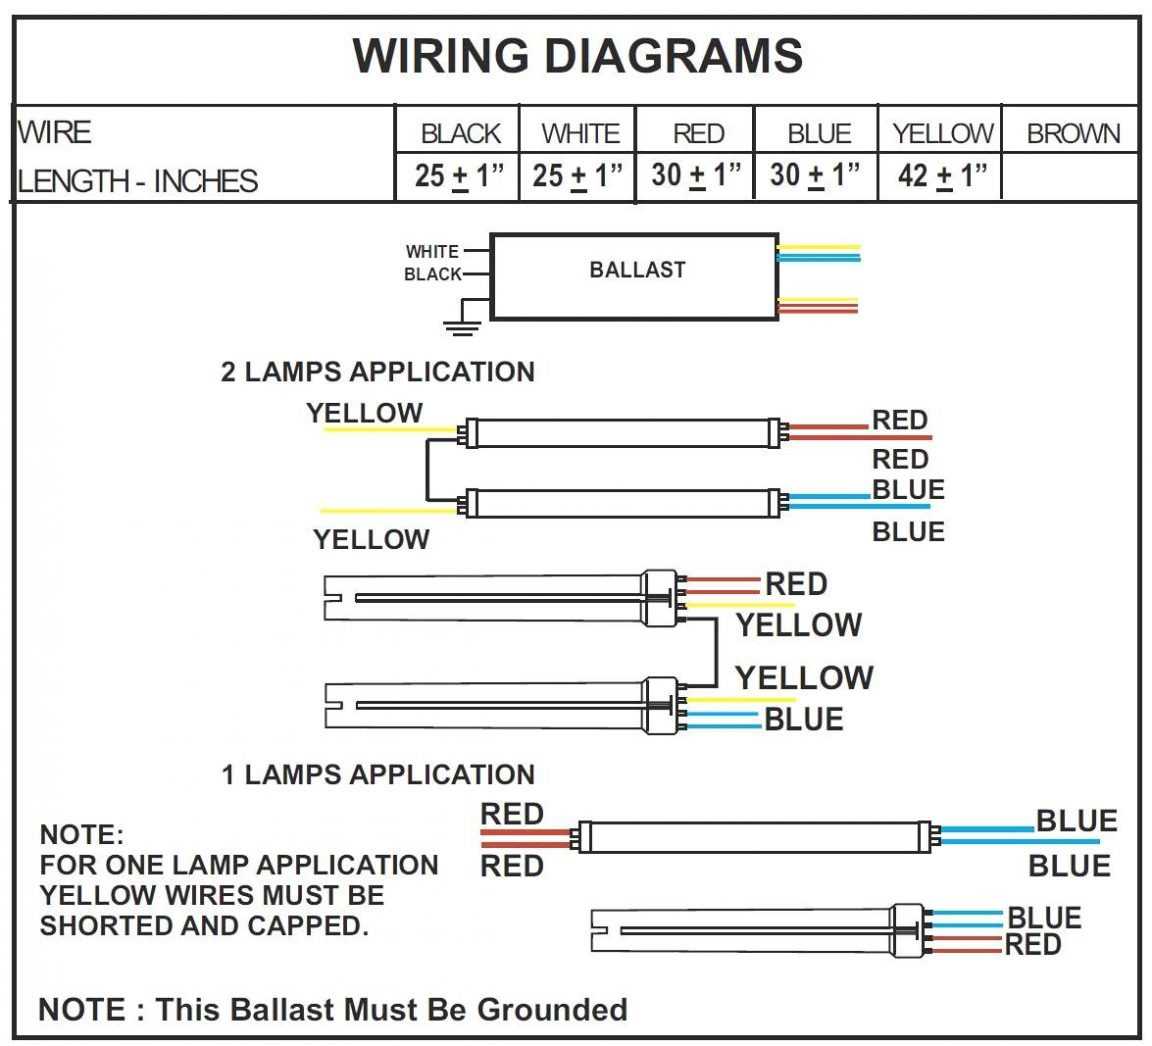 Electronic Ballast Wiring Diagram from wholefoodsonabudget.com